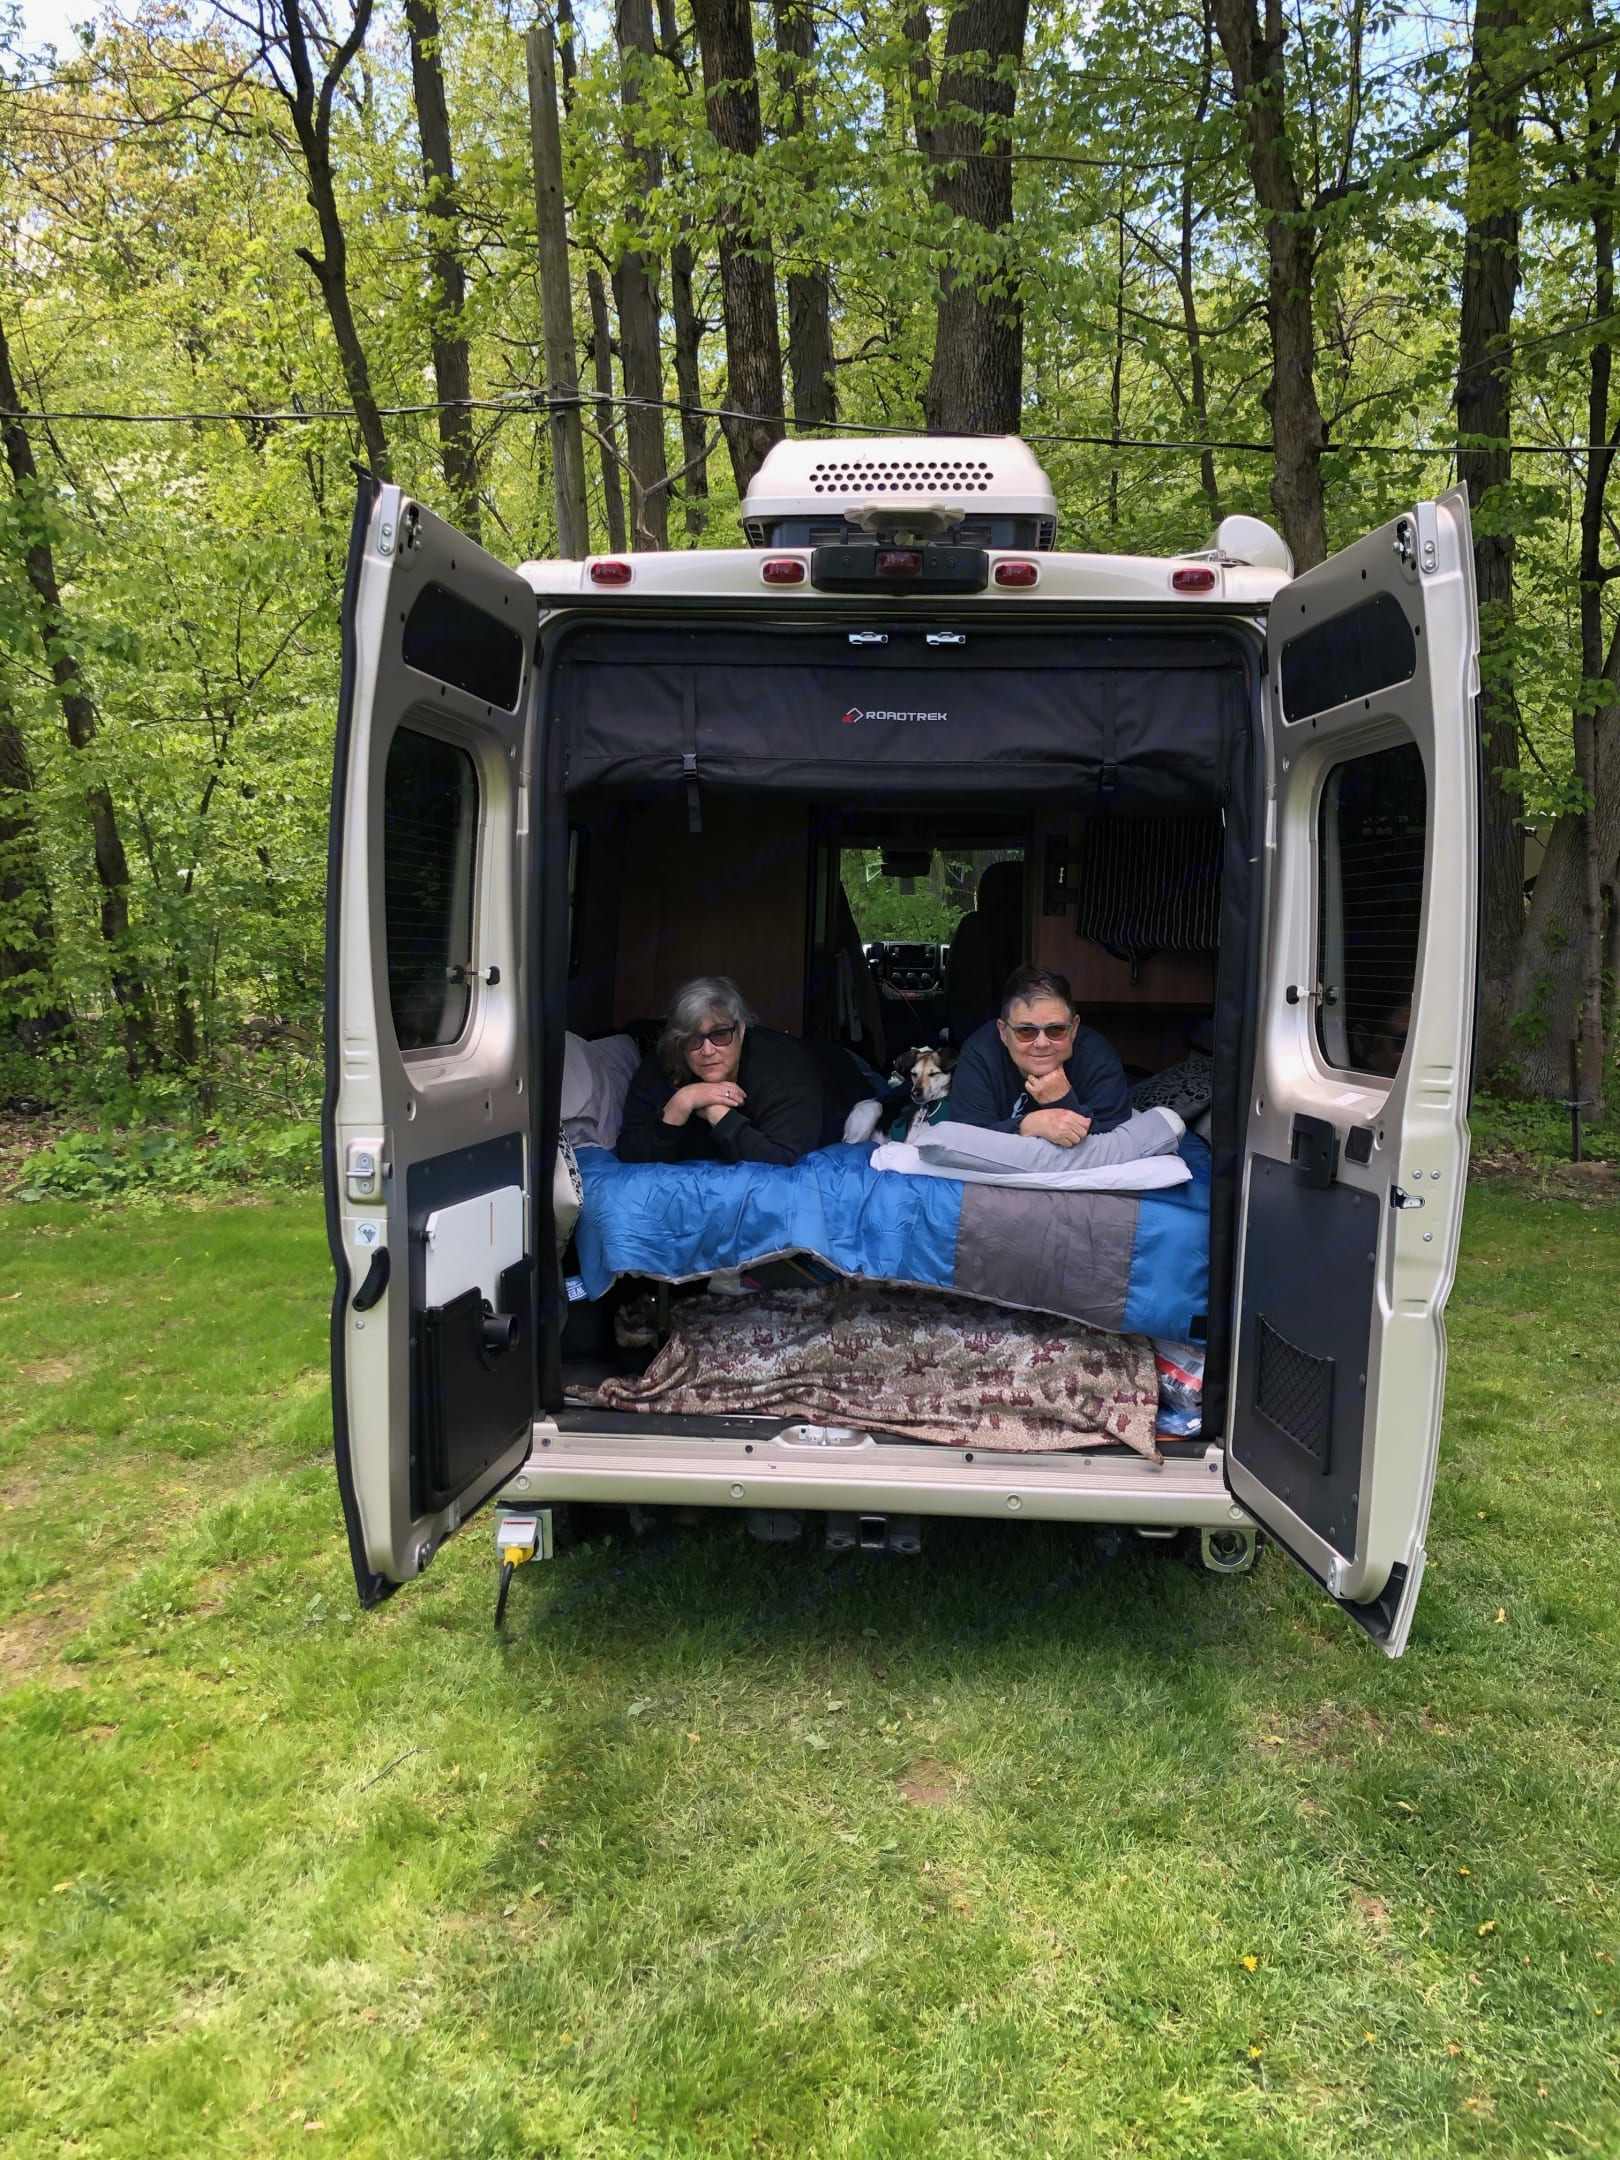 Enjoying the view at a campsite in rural New Jersey.. Roadtrek Promaster 2021